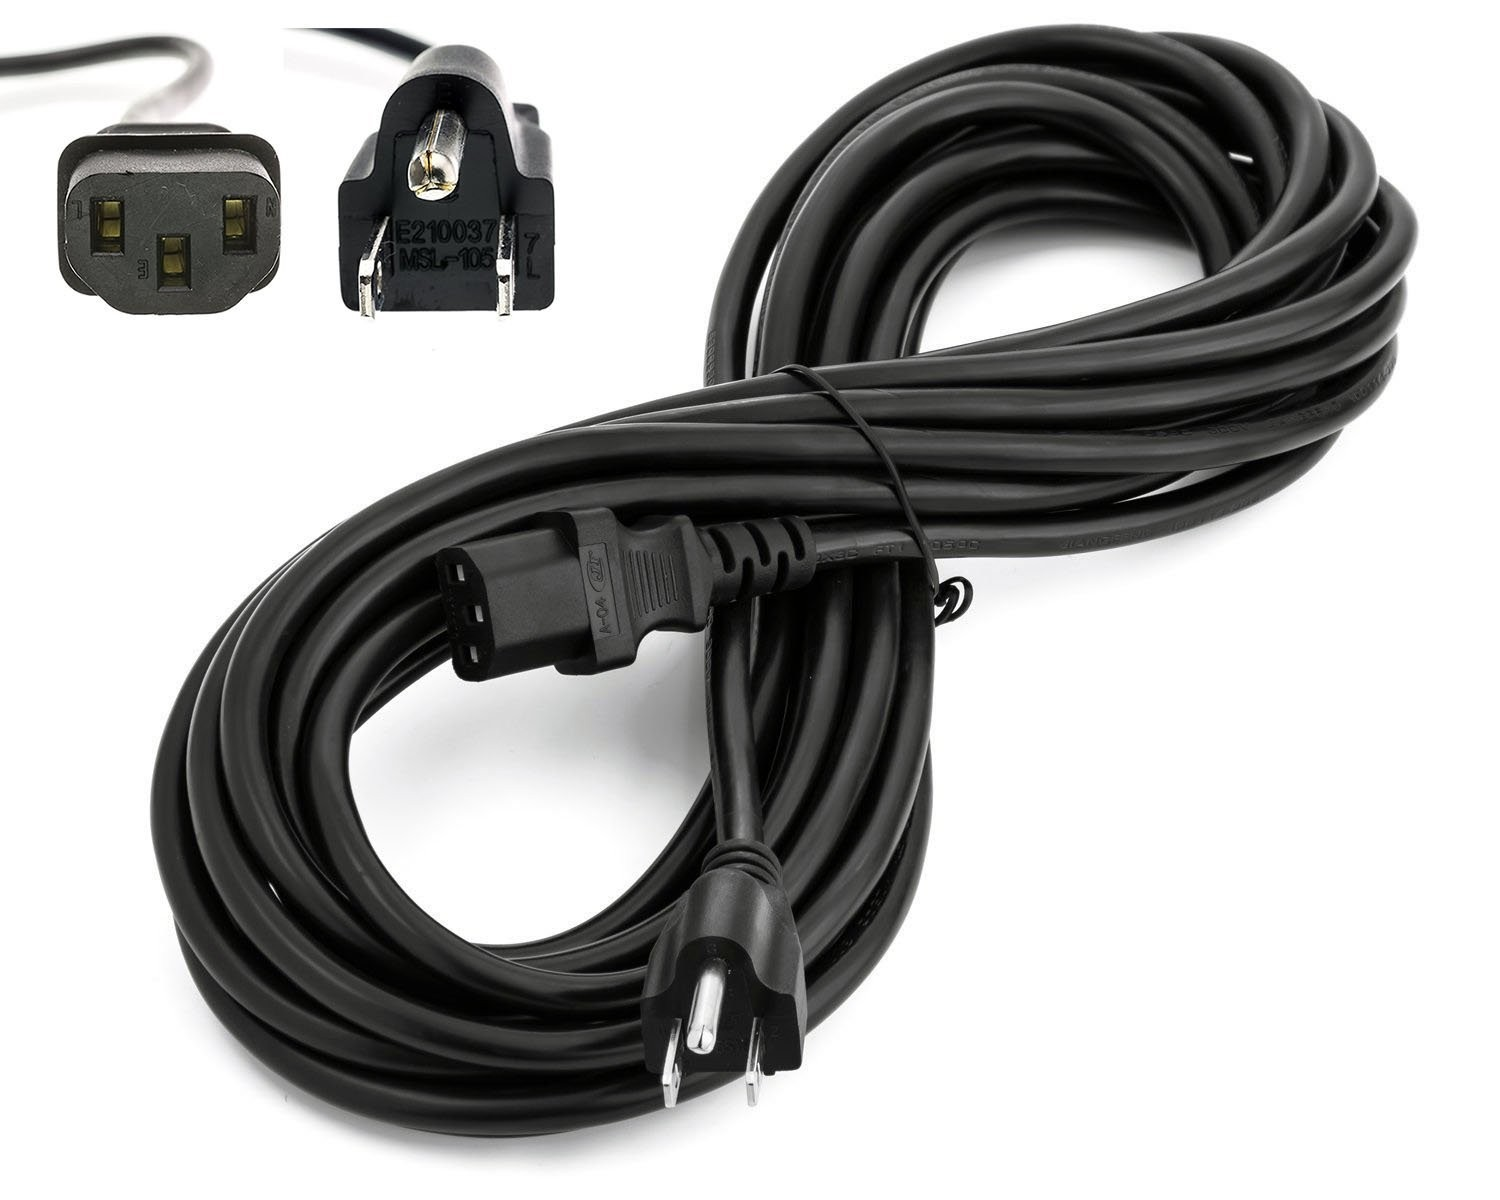 3 Prong Extension Cord Wiring Diagram Image Power Cable Amazon Amamax 25 Feet Extra Long Ac For Vizio Tv Nema